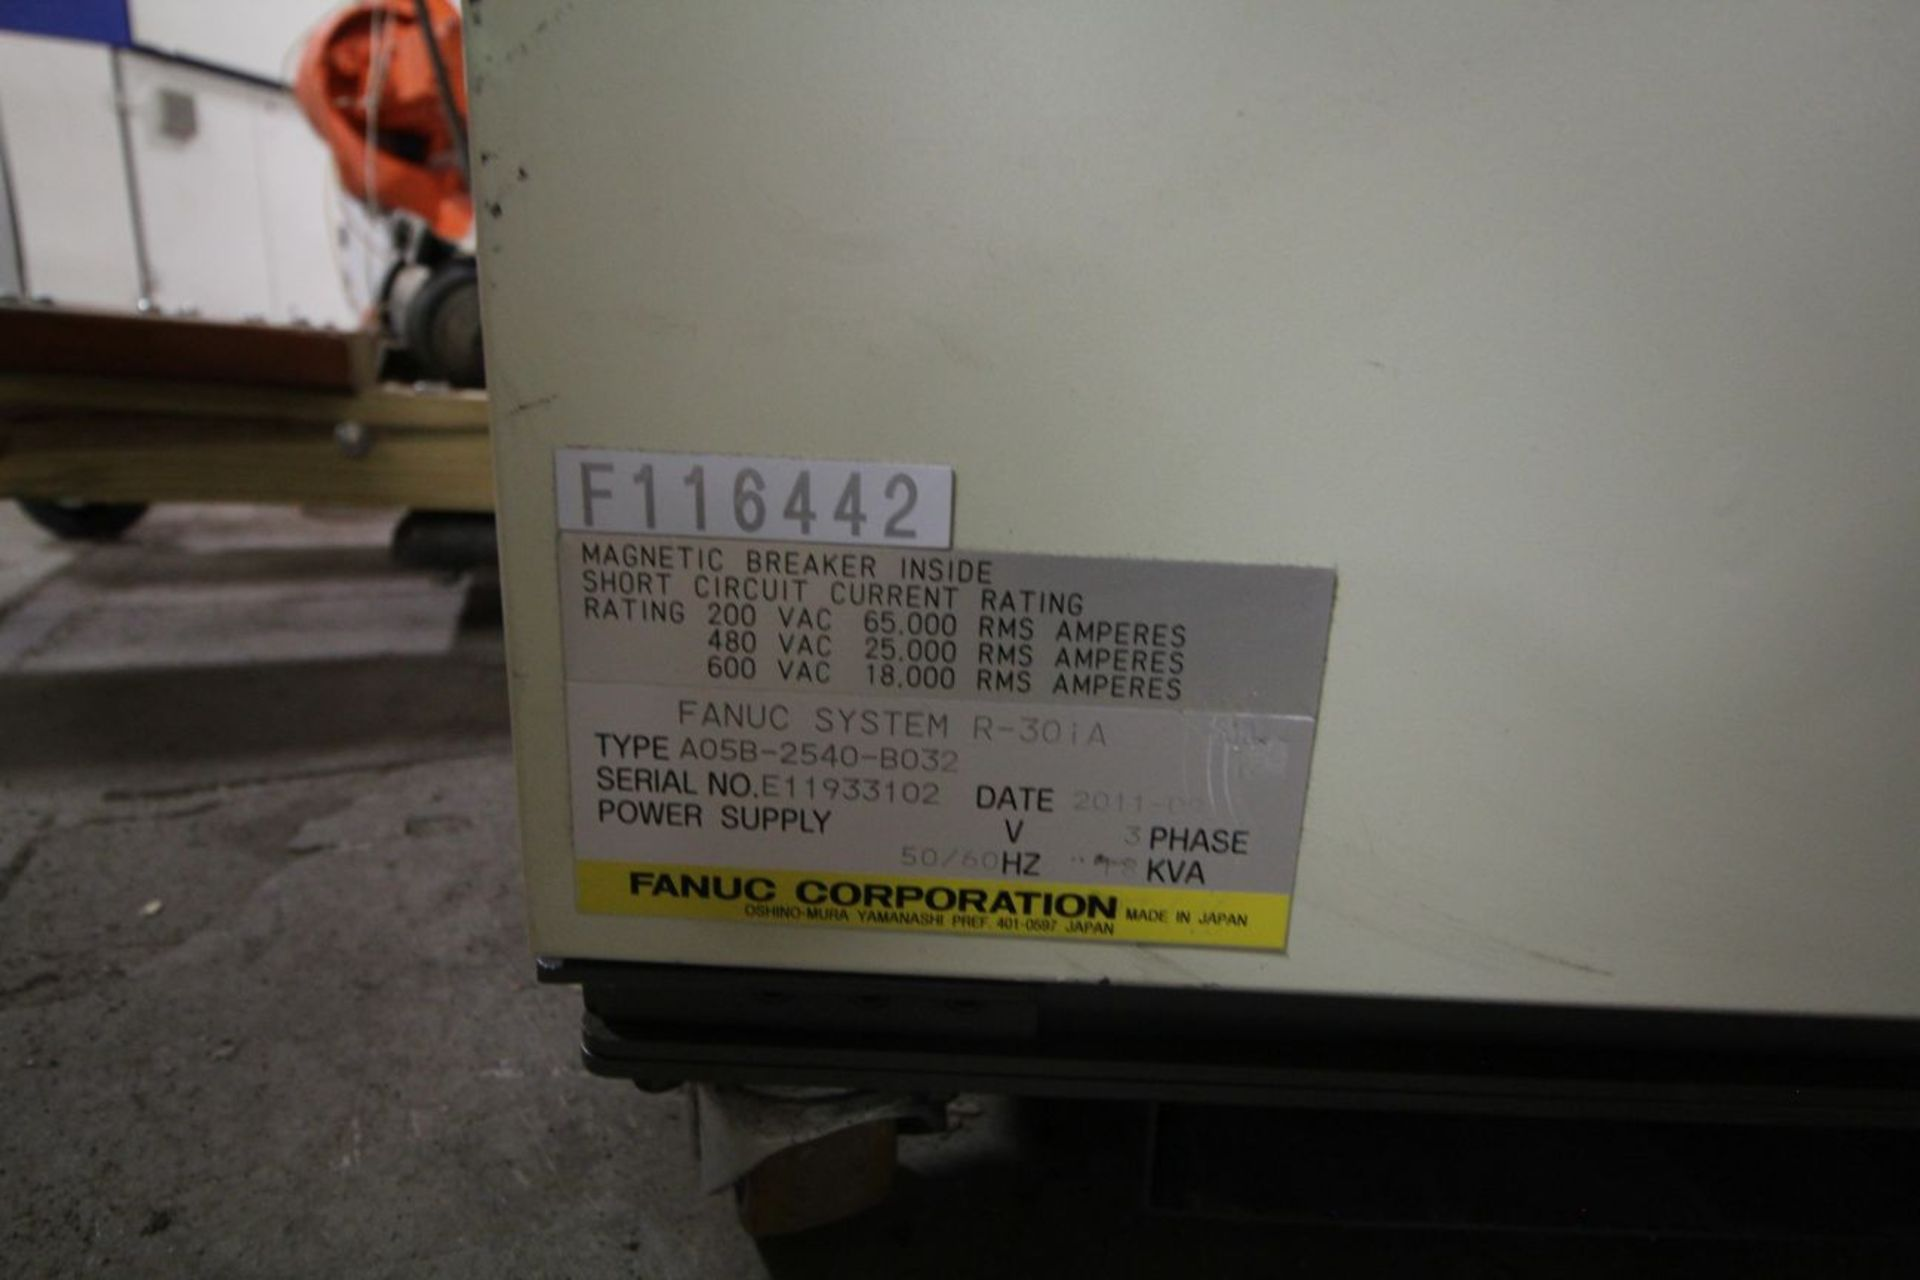 Lot 16 - FANUC ROBOT M-900iA/600 WITH R-30iA CONTROL, HOURS ON METER 2364, YEAR 2011, SN 116442